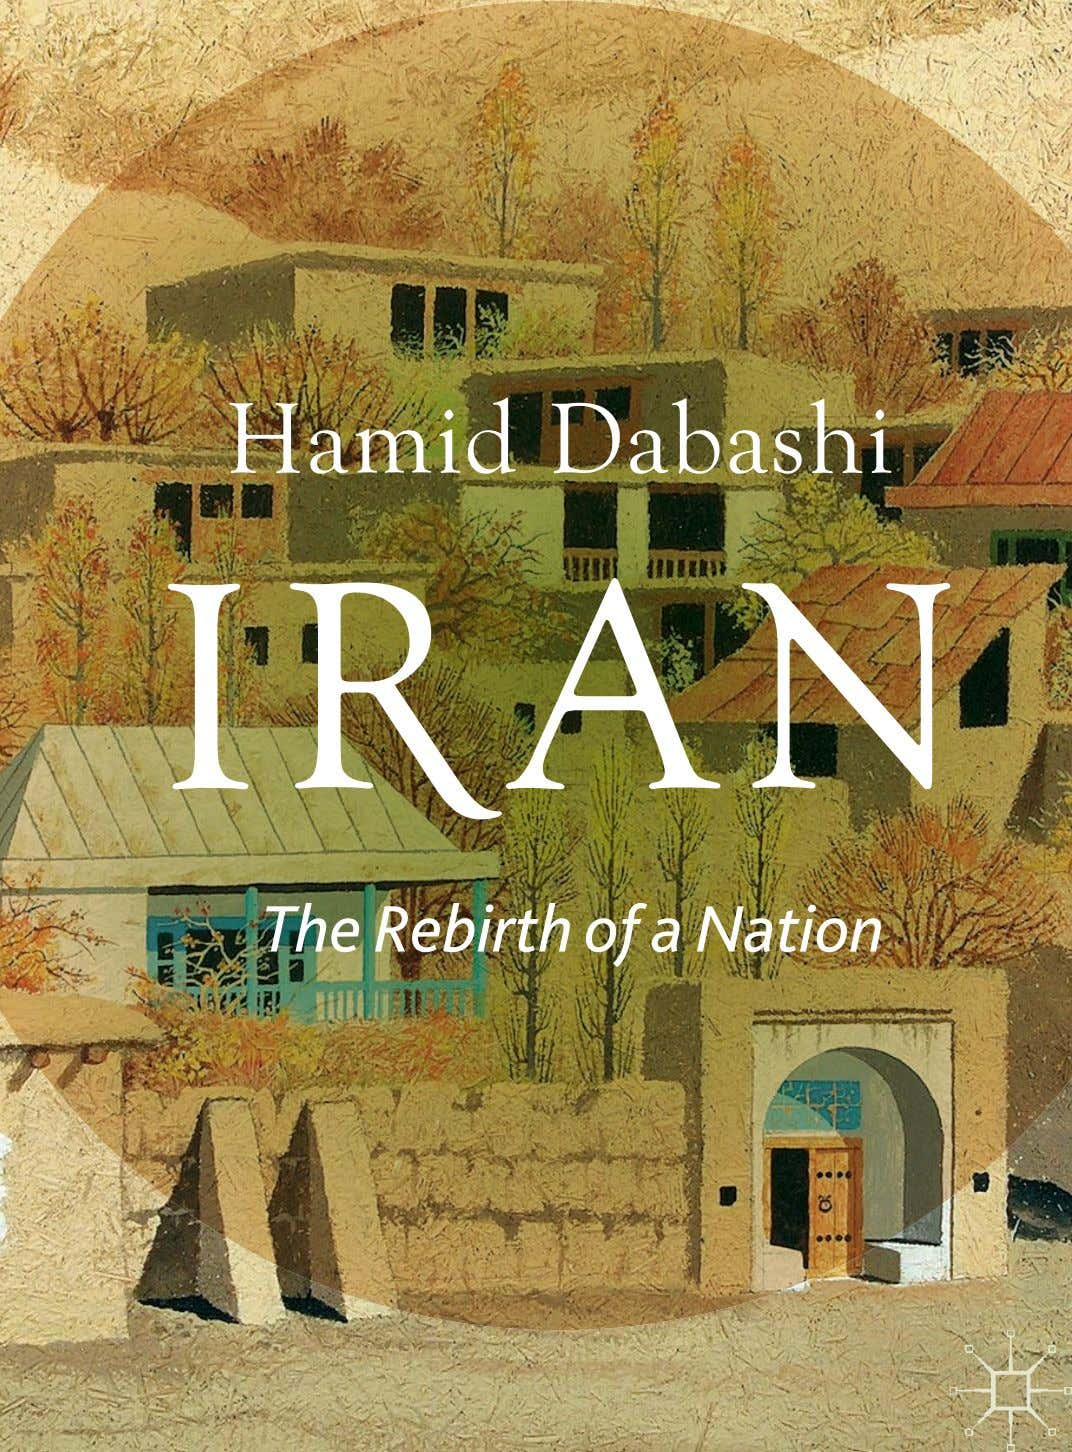 Hamid Dabashi The Rebirth of a Nation